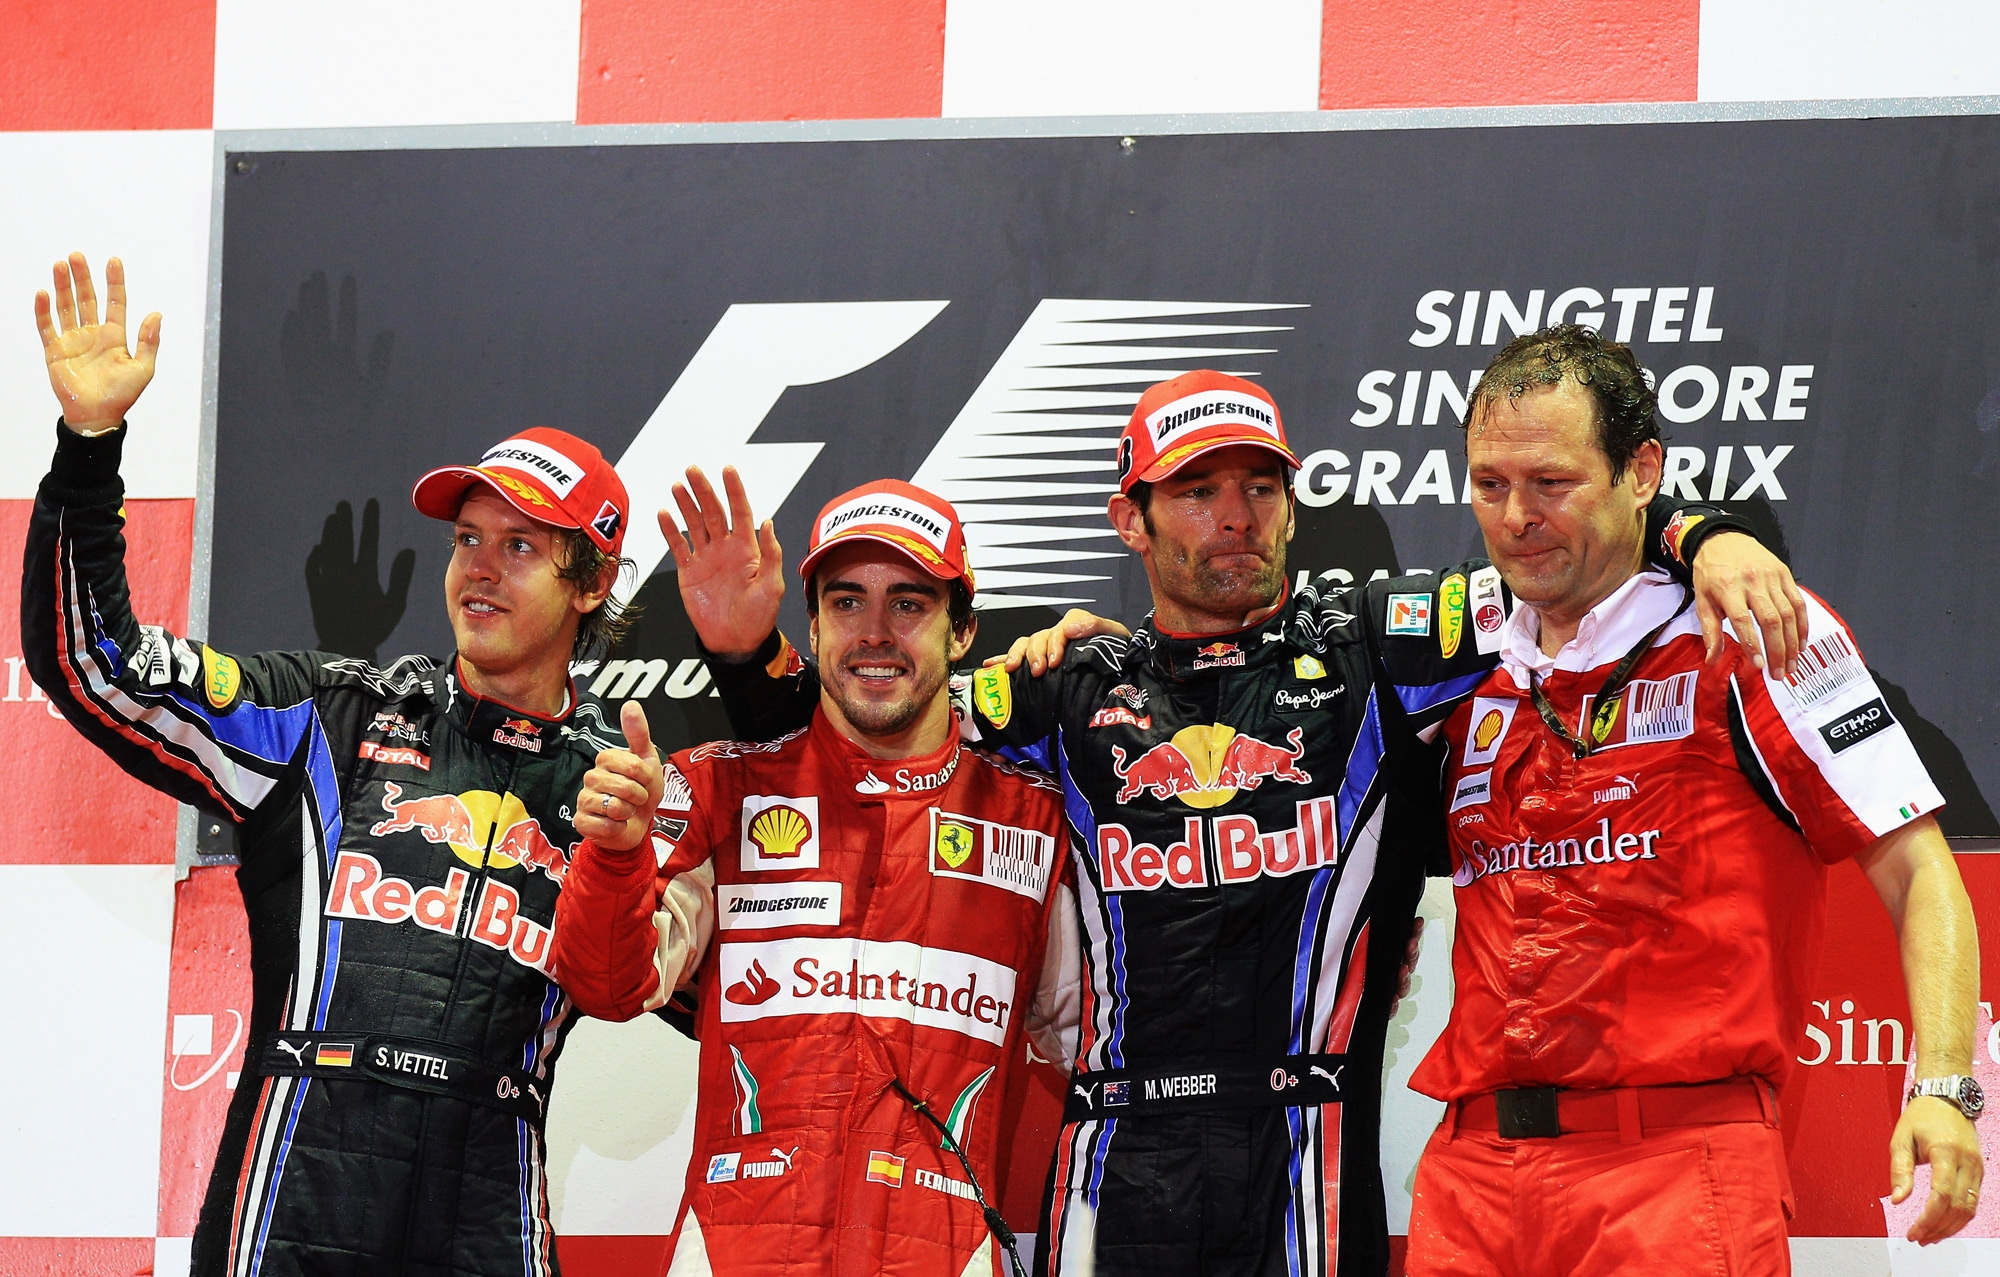 fernando alonso sebastian vettel mark webber singapore gp f1 2010 podium